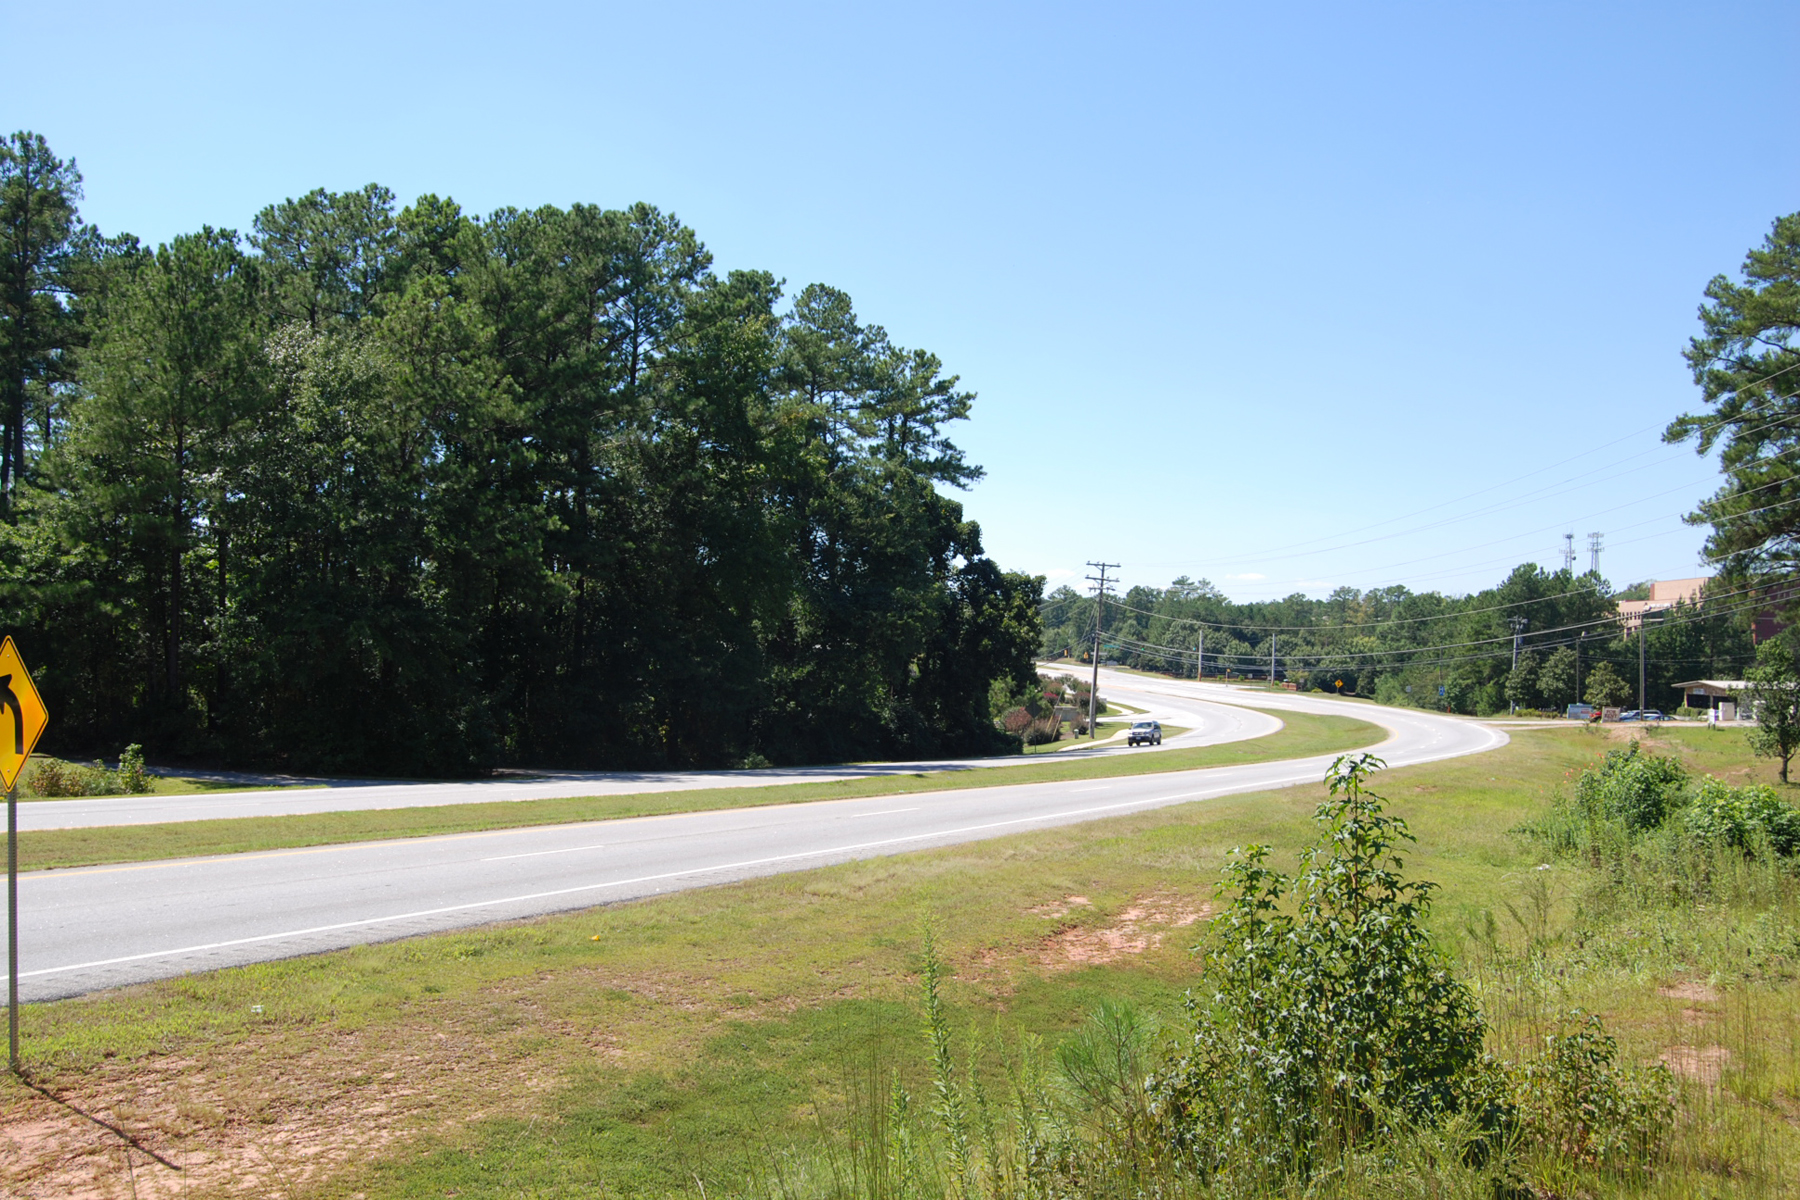 토지 용 매매 에 Prime Location - 8+/- Acres Across From Piedmont Fayette Hospital 1218 Highway 54 W, Fayetteville, 조지아 30215 미국